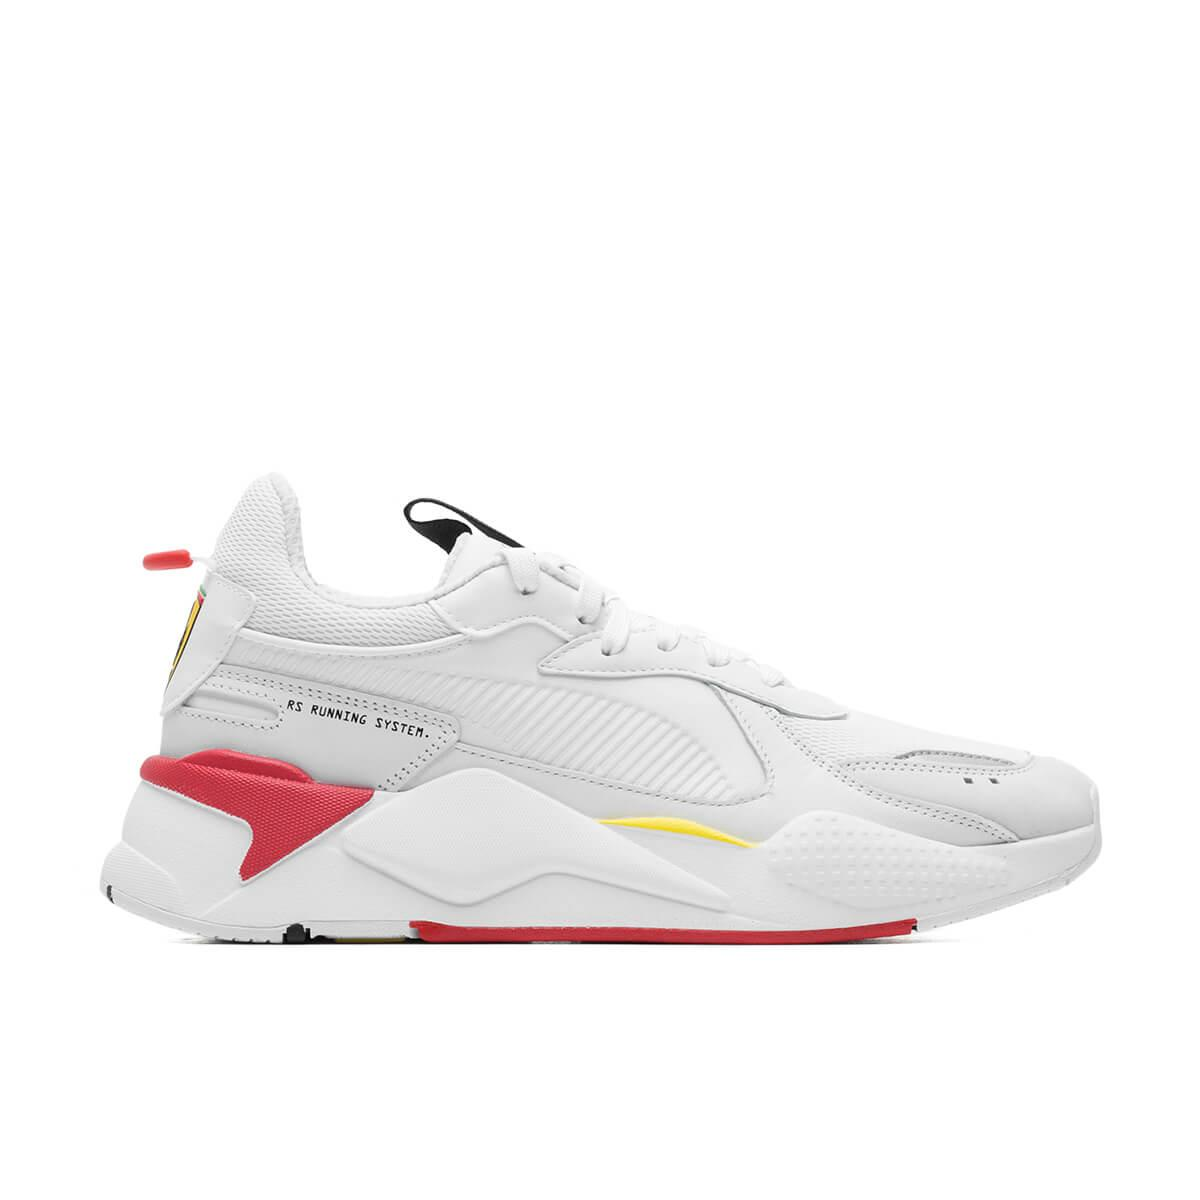 edacb79bba0 PUMA Sf Rs-x Trophy Sneakers in White for Men - Lyst